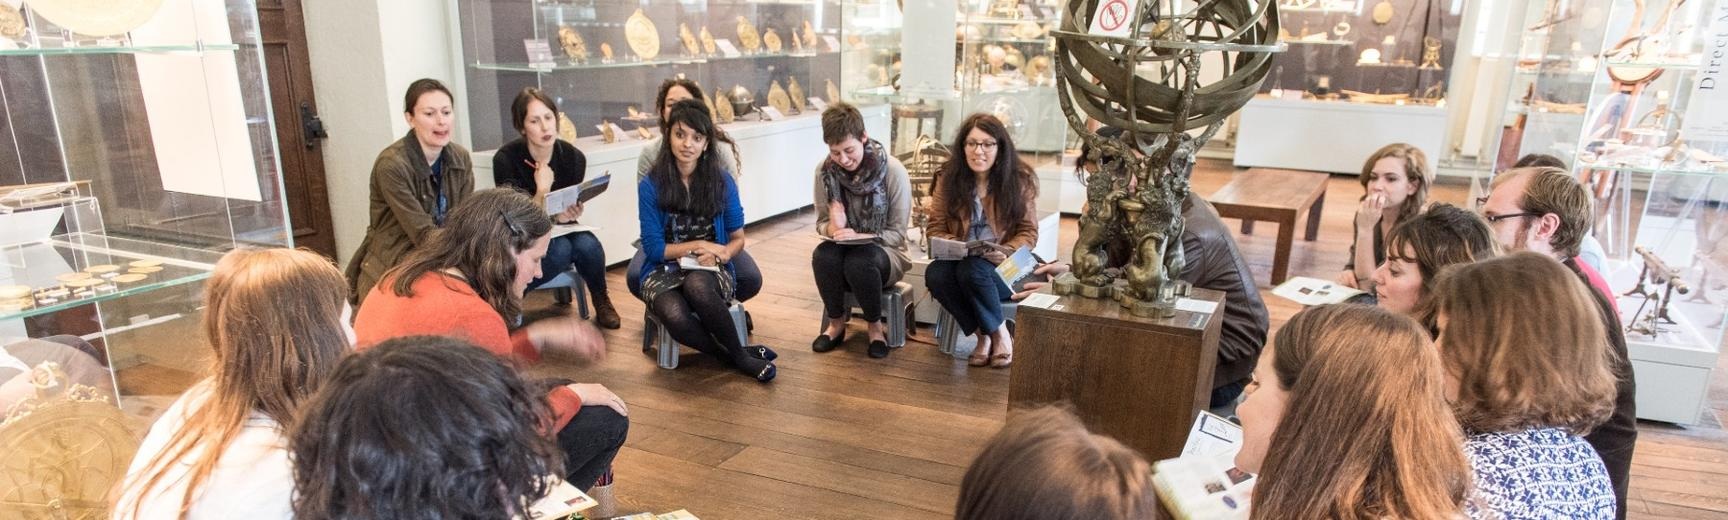 A group of people in a museum hold exhibition guides and sit in a circle discussing